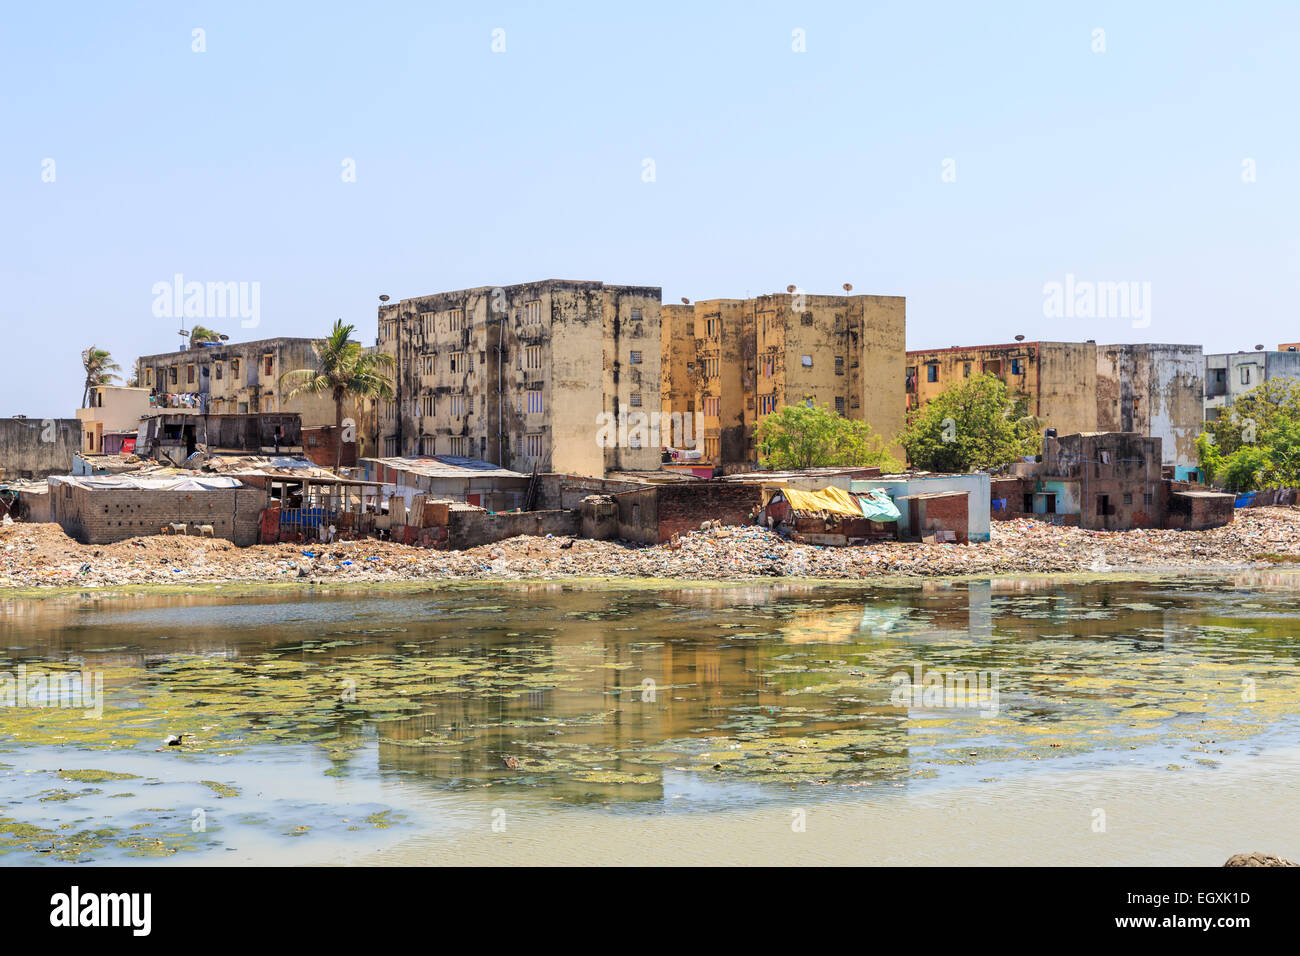 Third world poverty lifestyle: poor slums on the banks of the polluted Adyar River estuary with filthy water, in - Stock Image